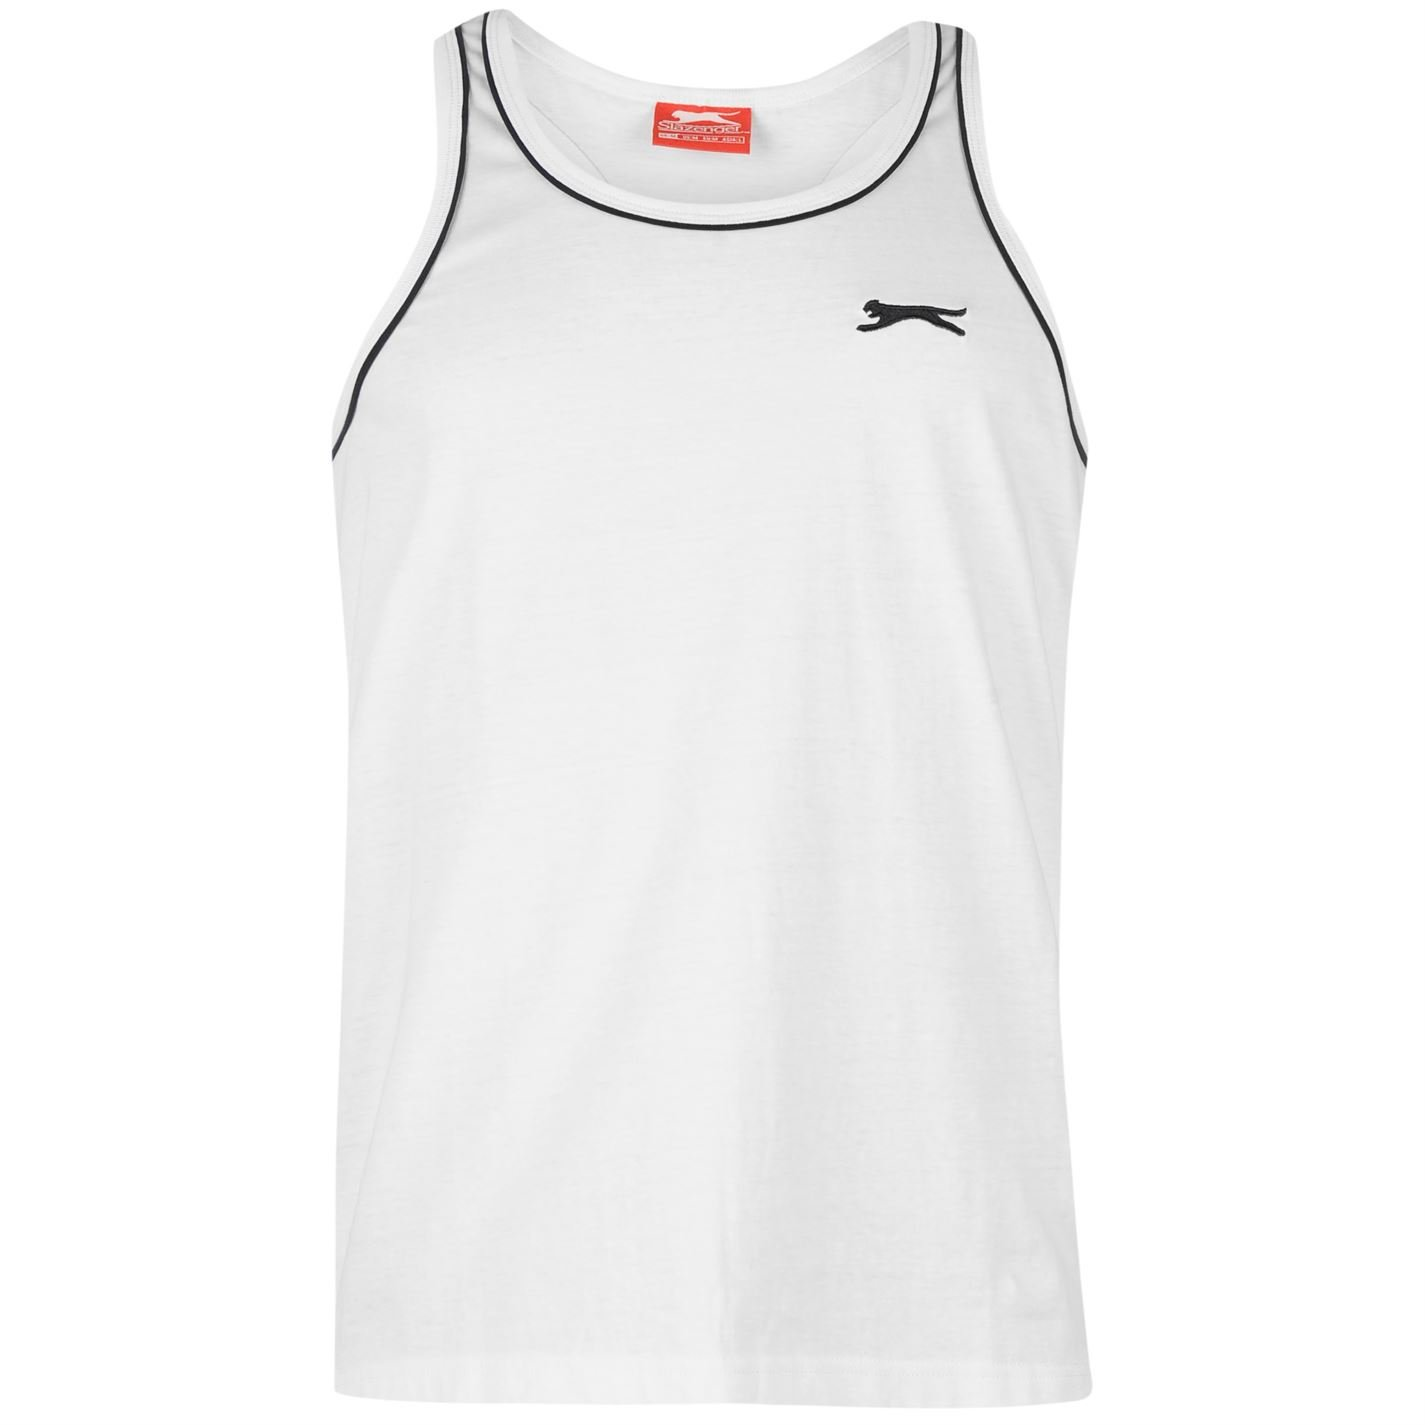 Slazenger Tank Top – Men's